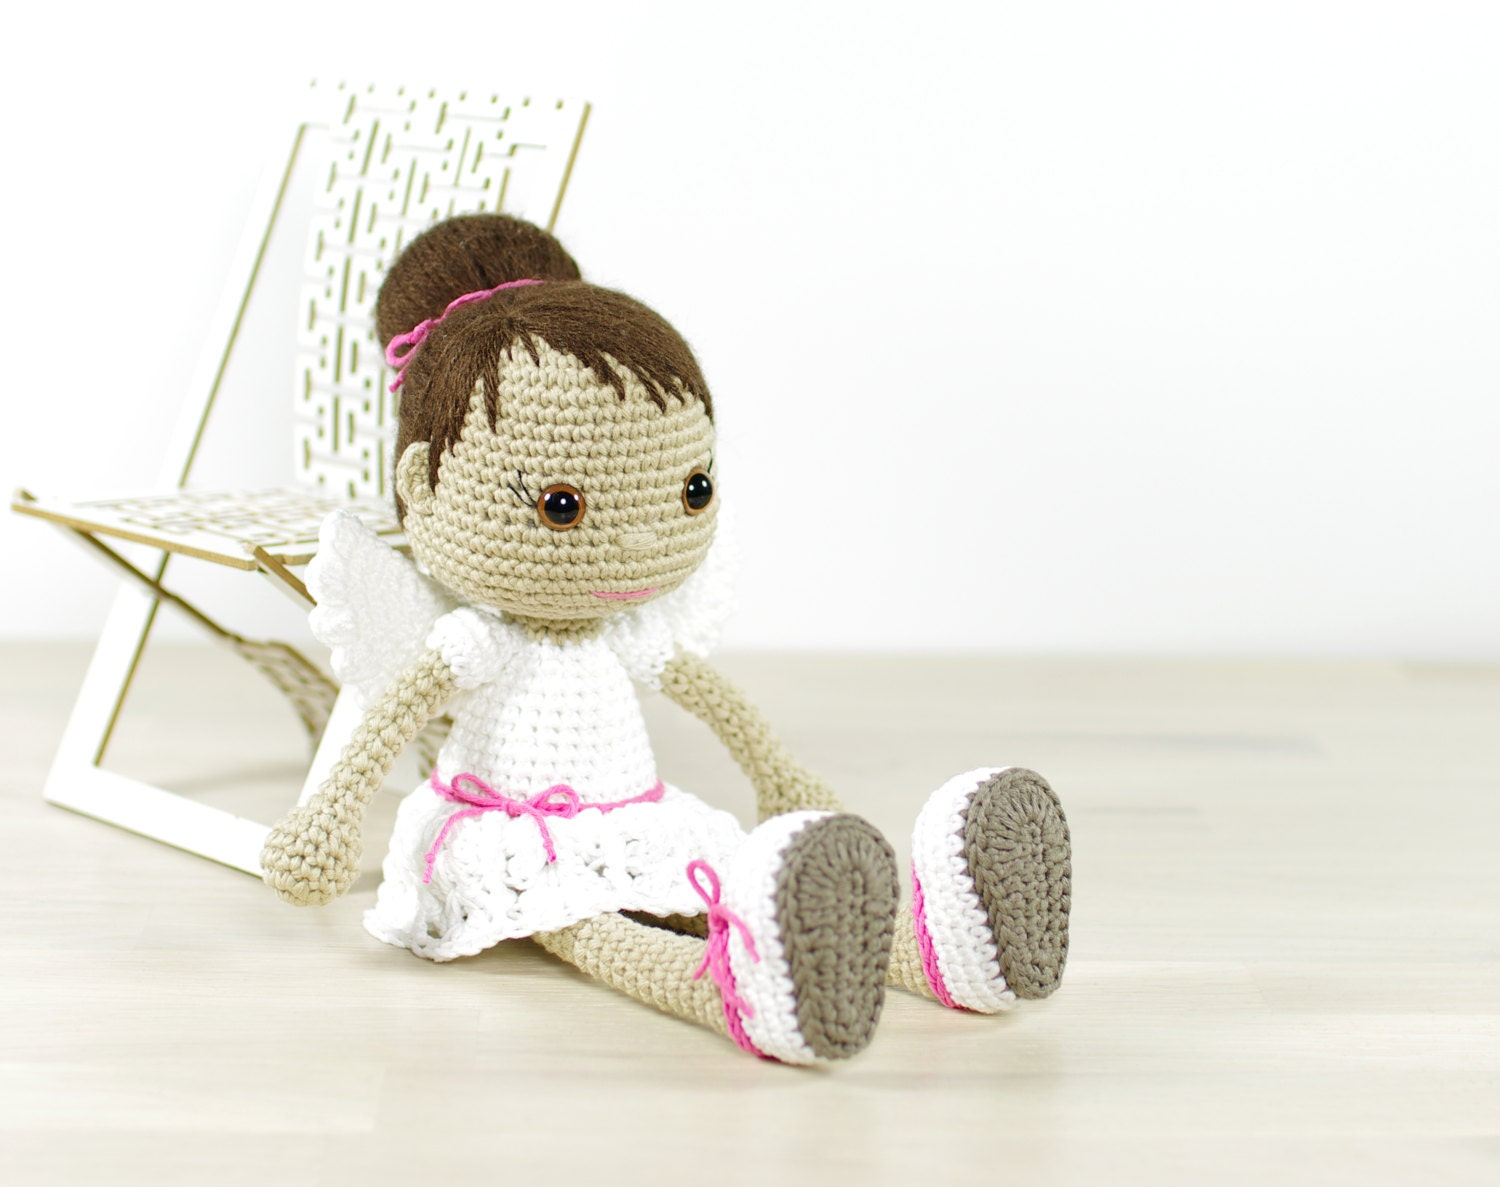 Amigurumi Doll Tutorial For Beginners : PATTERN: Angel Crocheted angel doll pattern Amigurumi